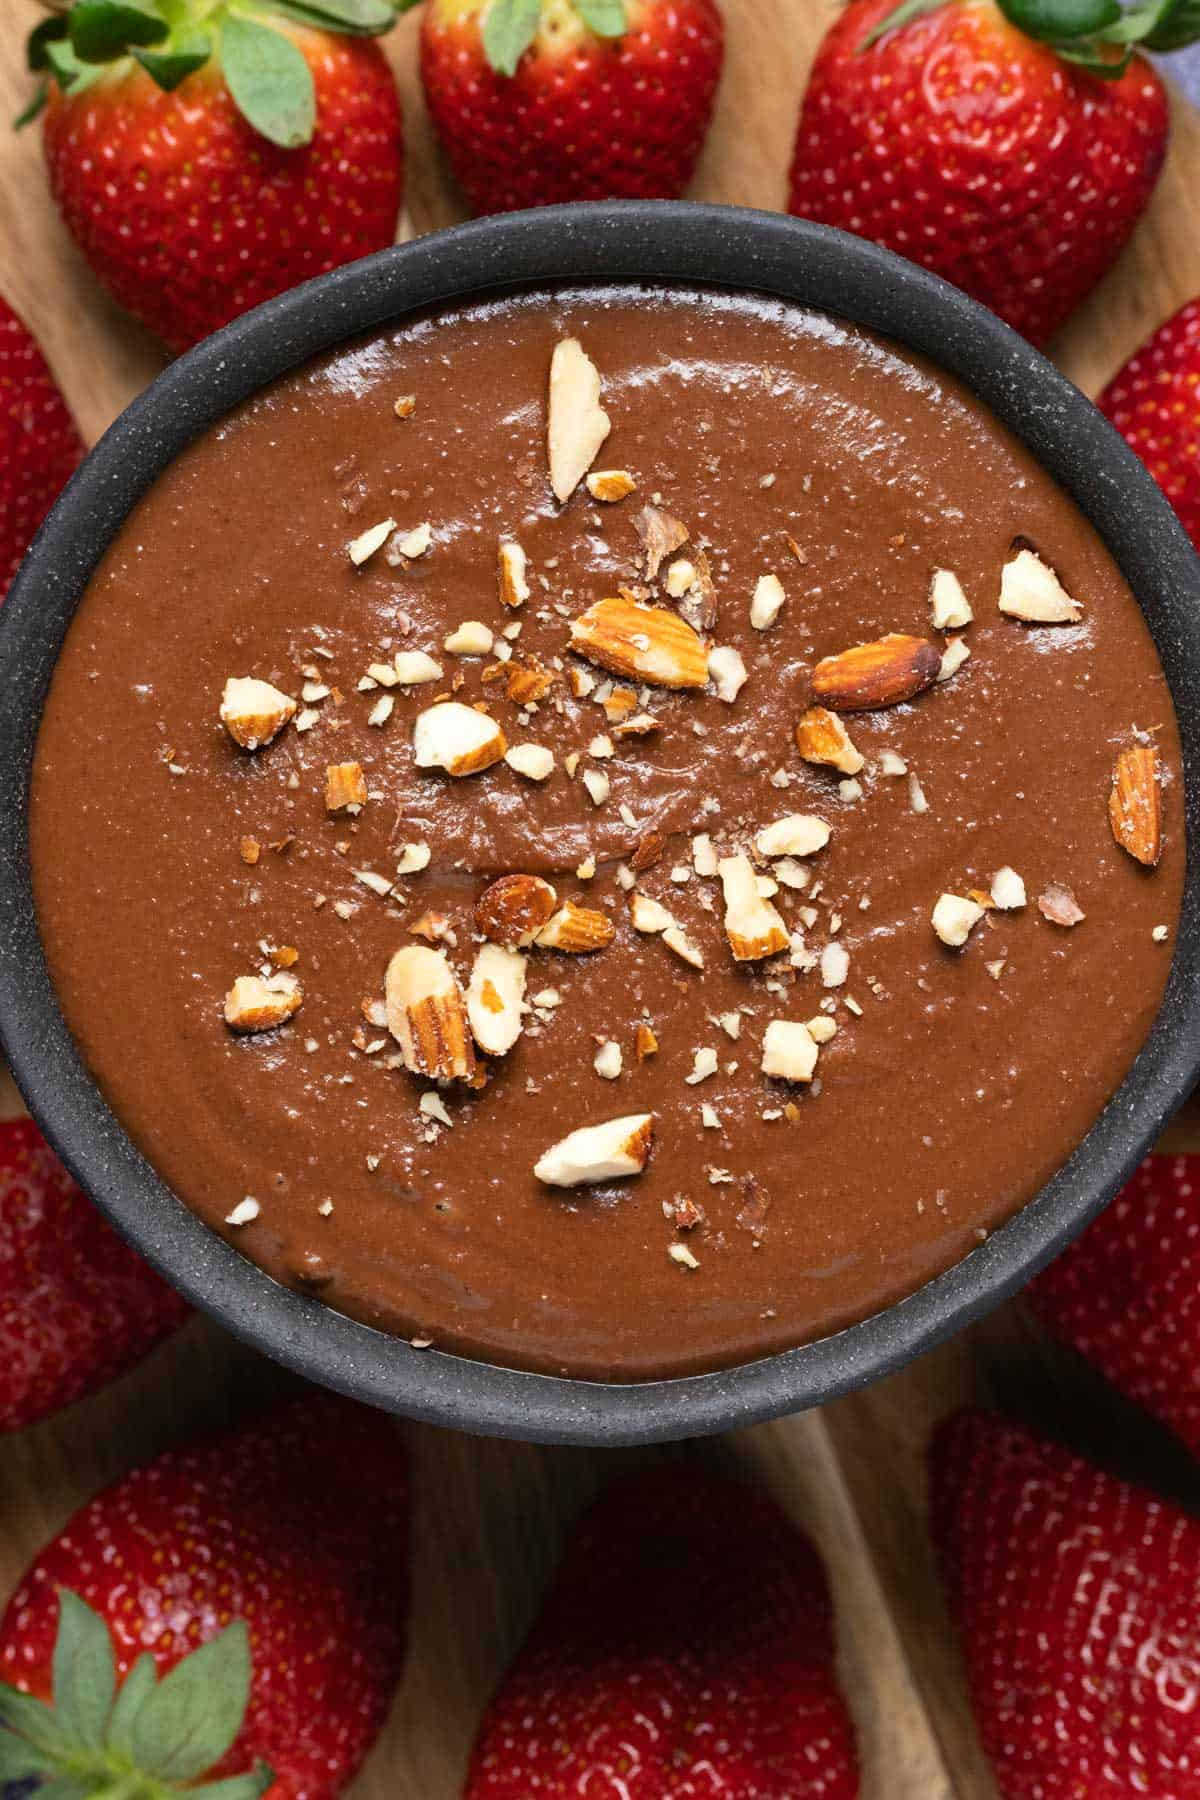 Chocolate hummus topped with chopped almonds in a black bowl.